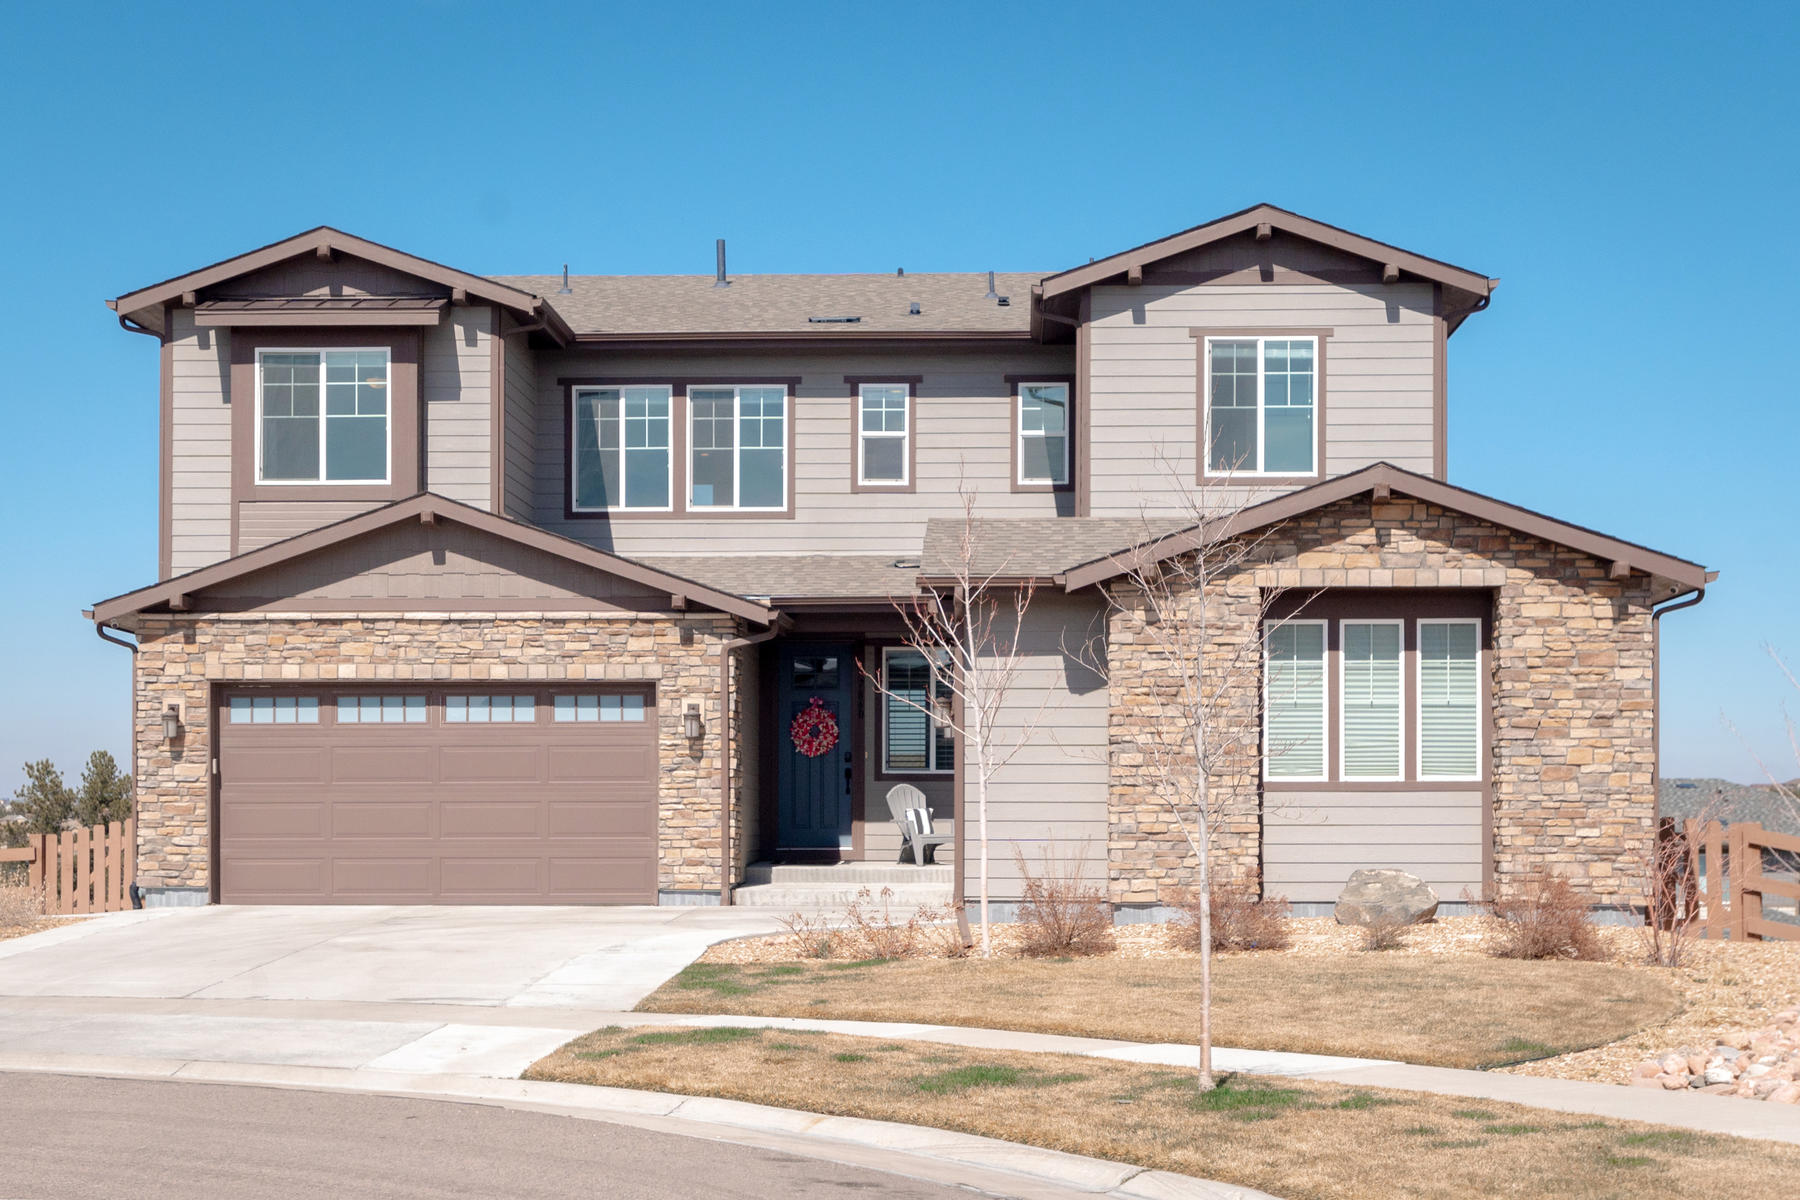 Single Family Homes for Sale at Welcome to this NEARLY NEW Shea built home in Whispering Pines neighborhood! 7860 S Grand Baker Street, Aurora, Colorado 80016 United States